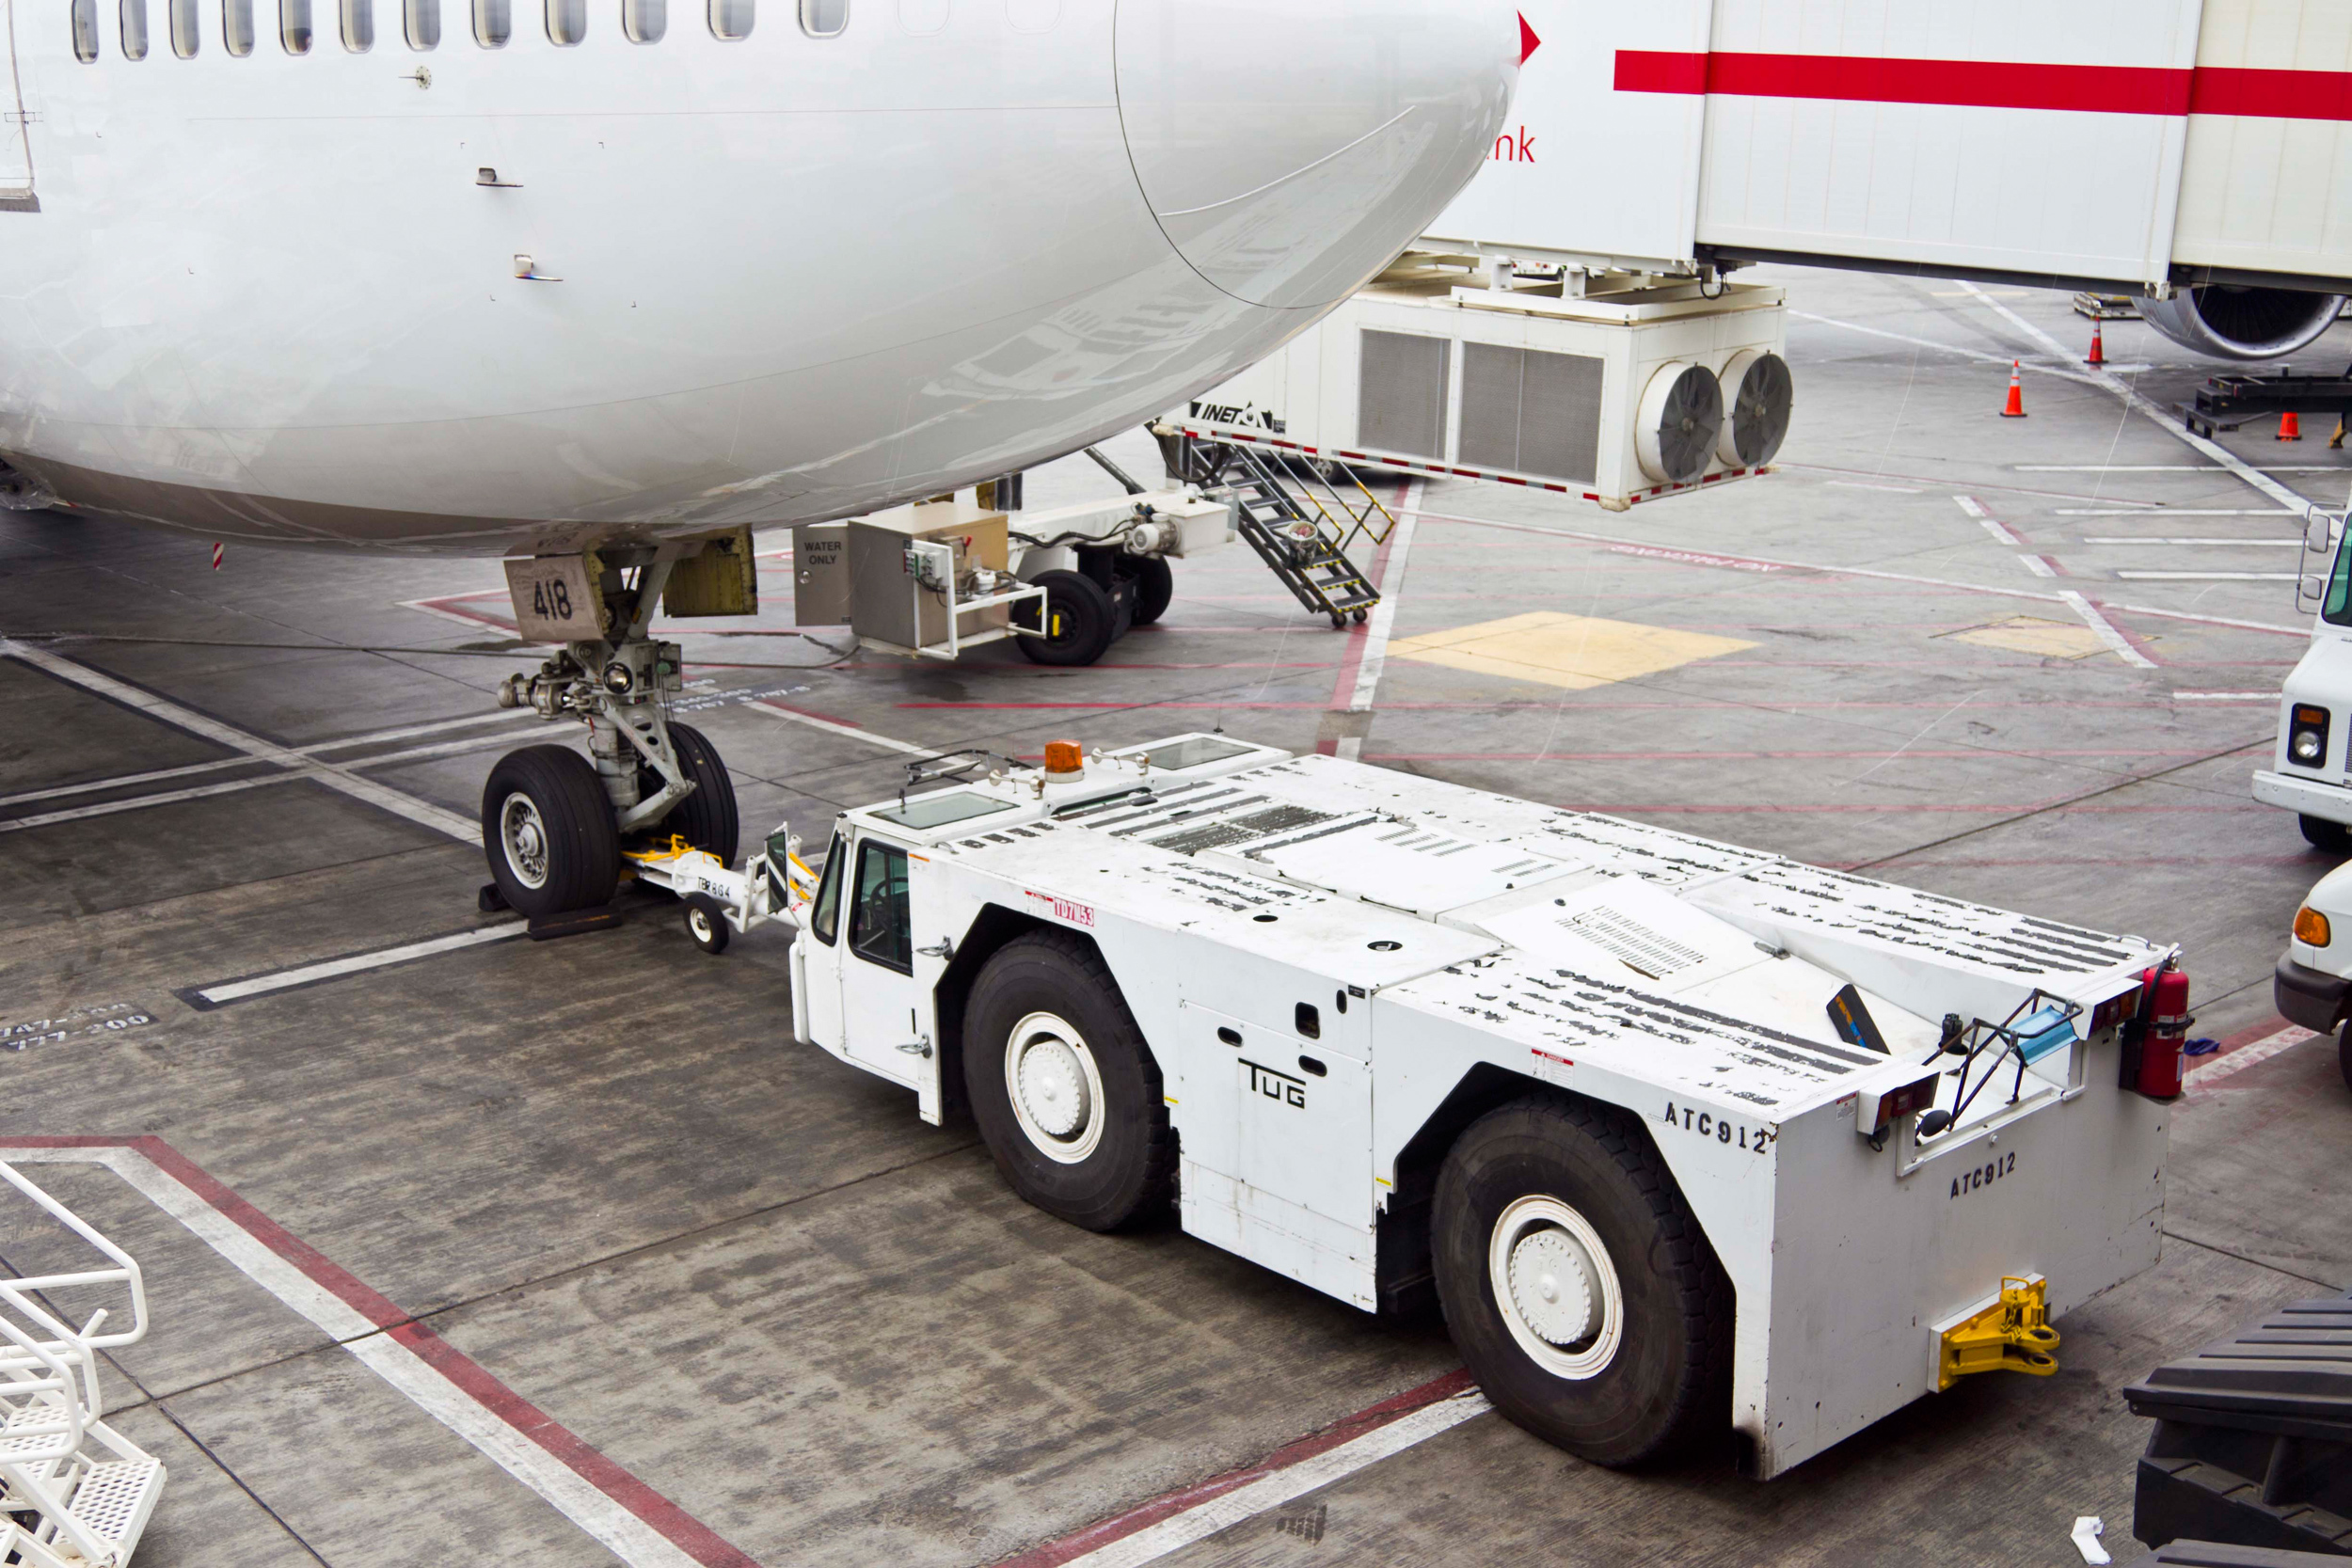 A TUG Technologies Corporation GT110 pushback prepares to move an airliner. (Photo: Business Wire)